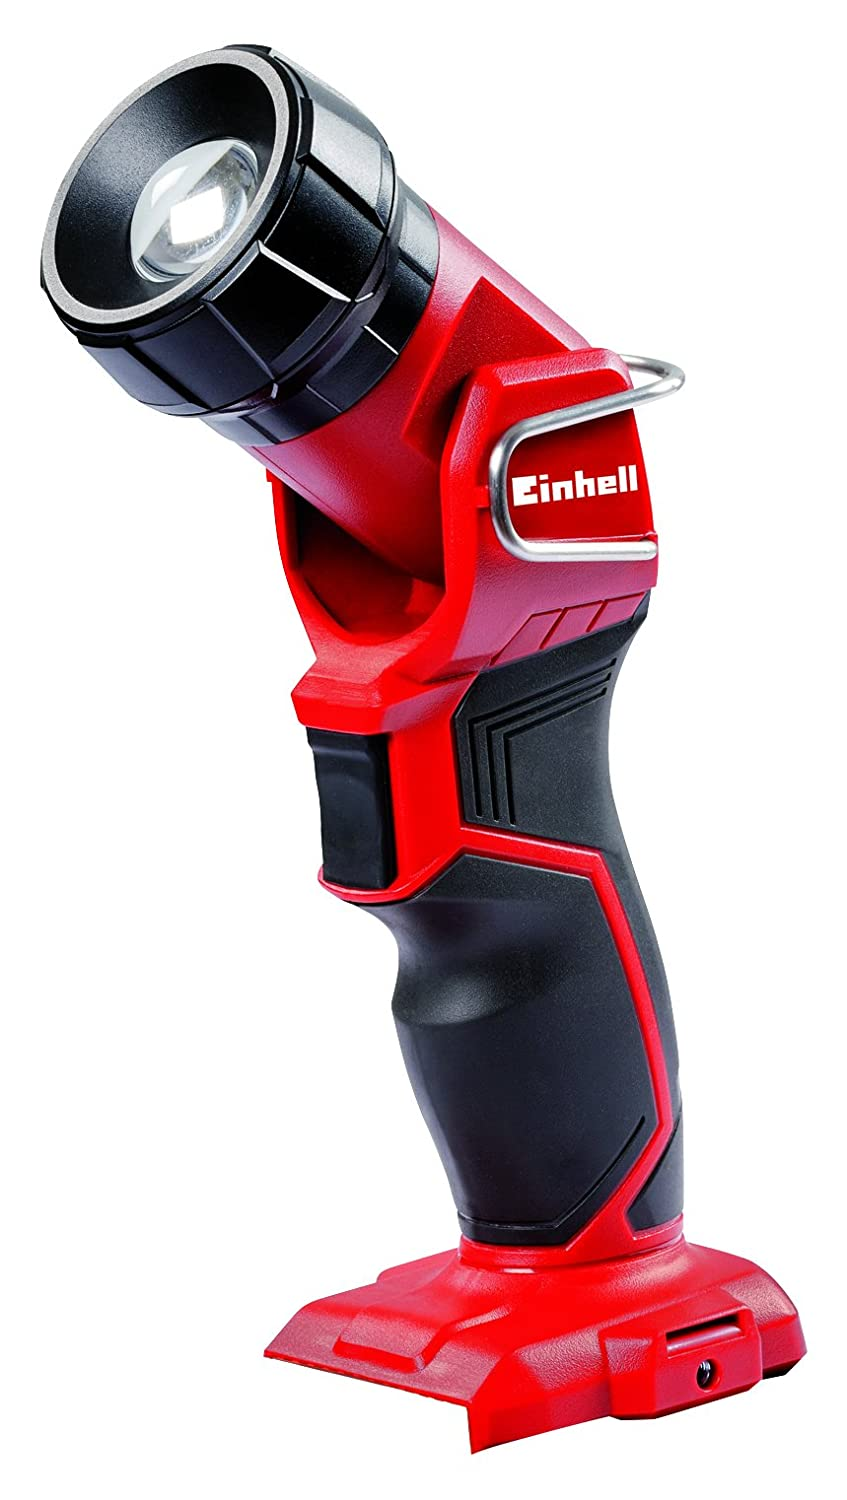 Einhell Power X-Change TE-CL 18 Li H Solo Cordless Light, 18 V, Red, One Size 4514130